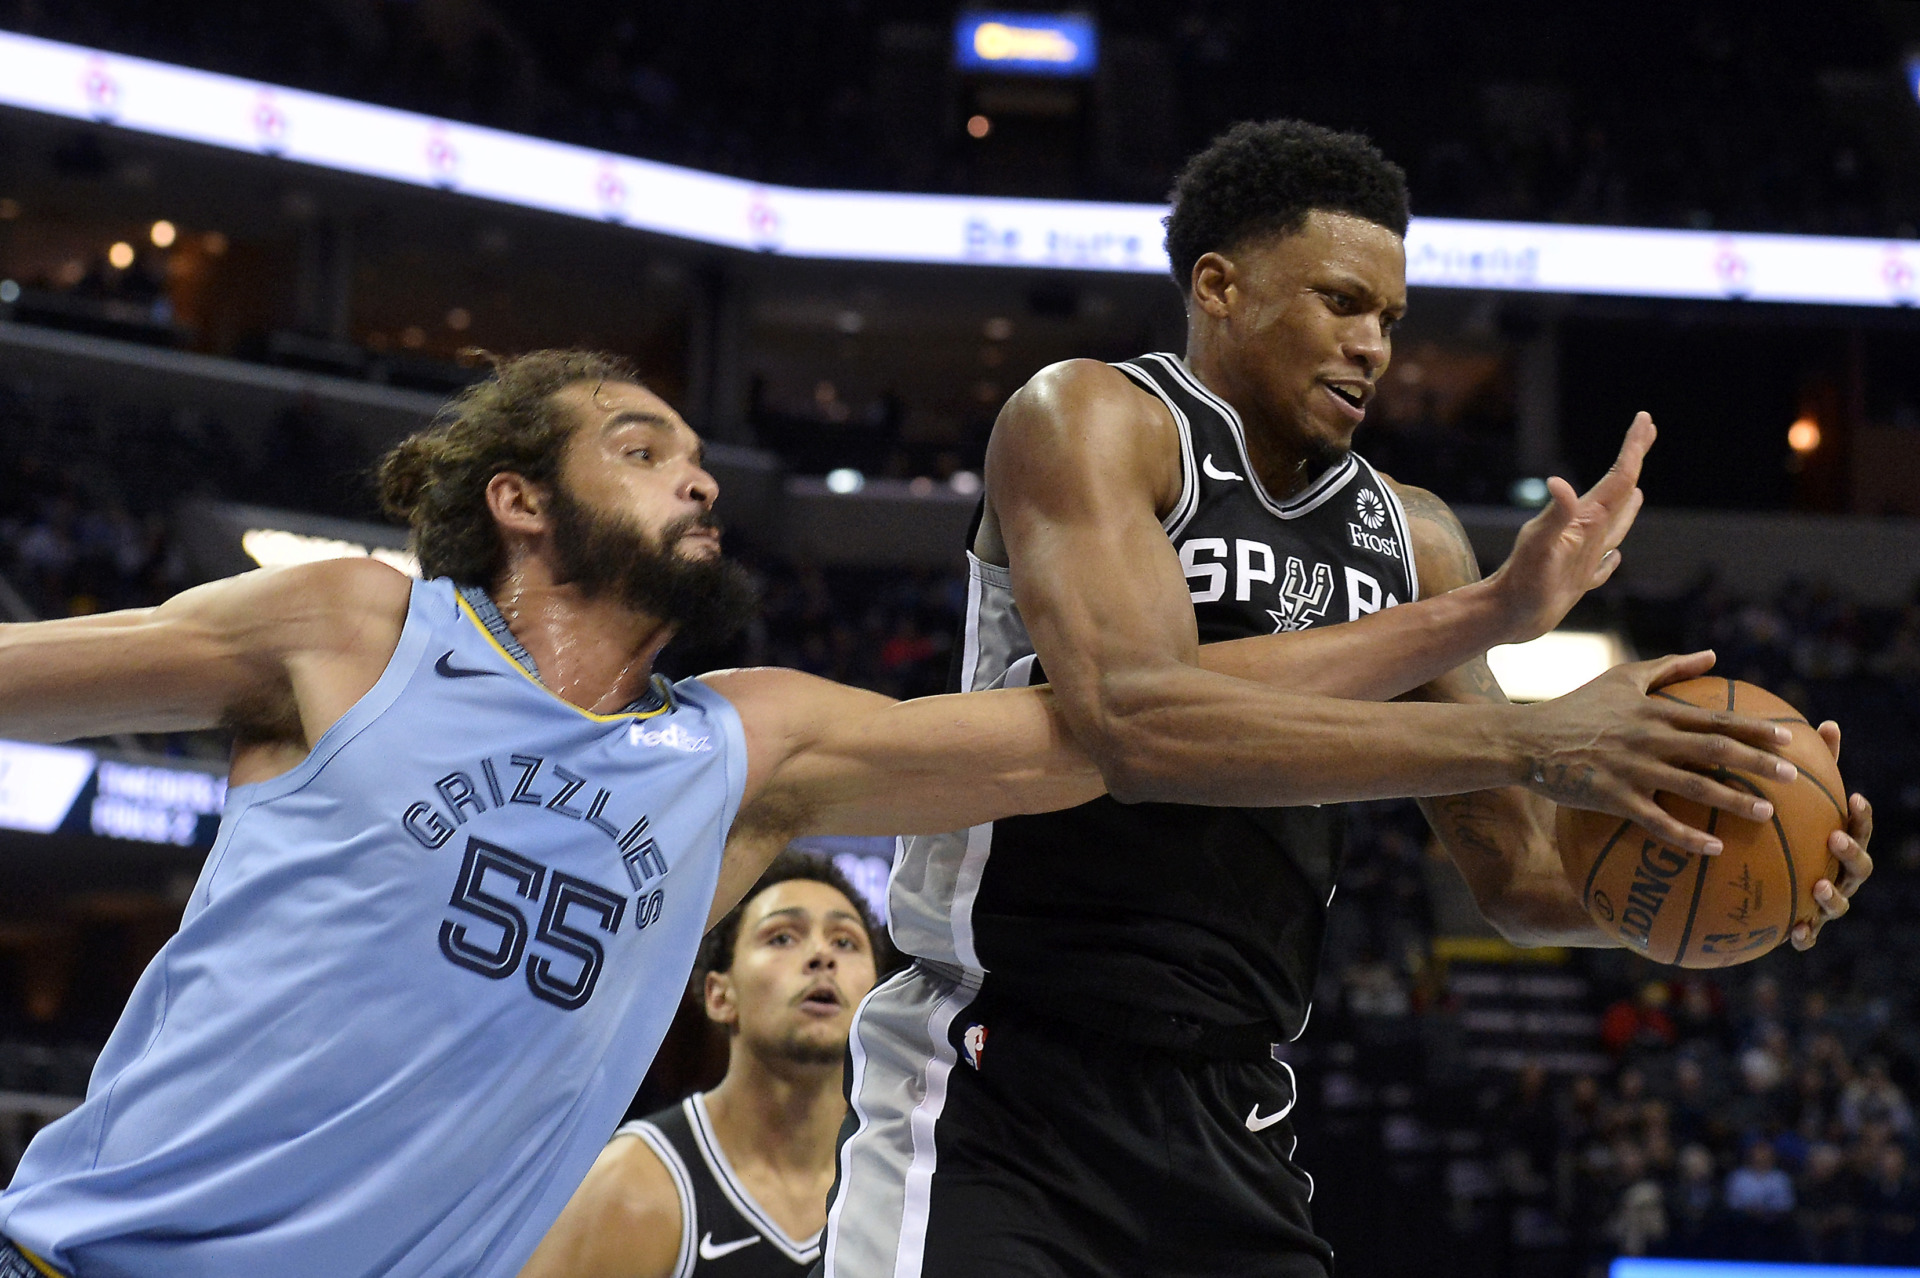 <span><strong>Memphis Grizzlies center Joakim Noah (55) tries to knock the ball away from San Antonio Spurs forward Rudy Gay on Tuesday, Feb. 12, 2019, in Memphis, Tenn.</strong> (AP Photo/Brandon Dill)</span>